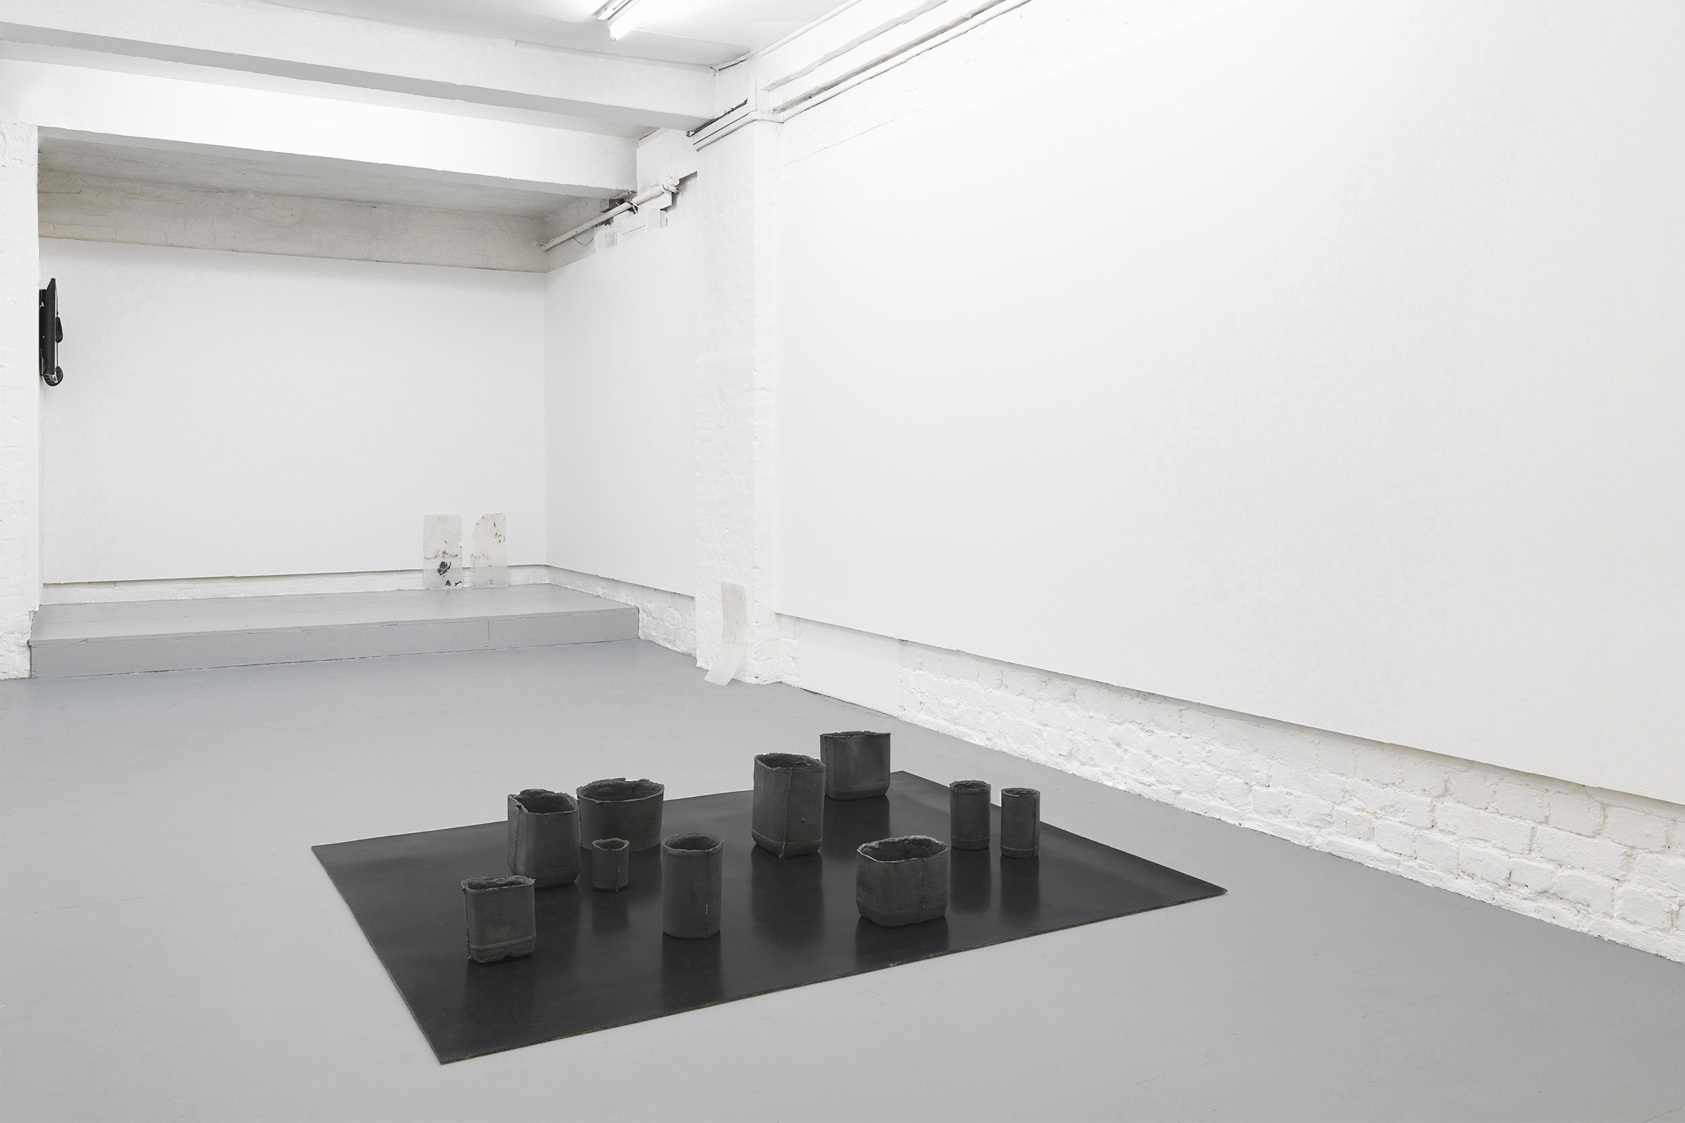 Installation view. Andrea Zucchini, Alchemical Studies, 2014 at Tenderpixel, London.